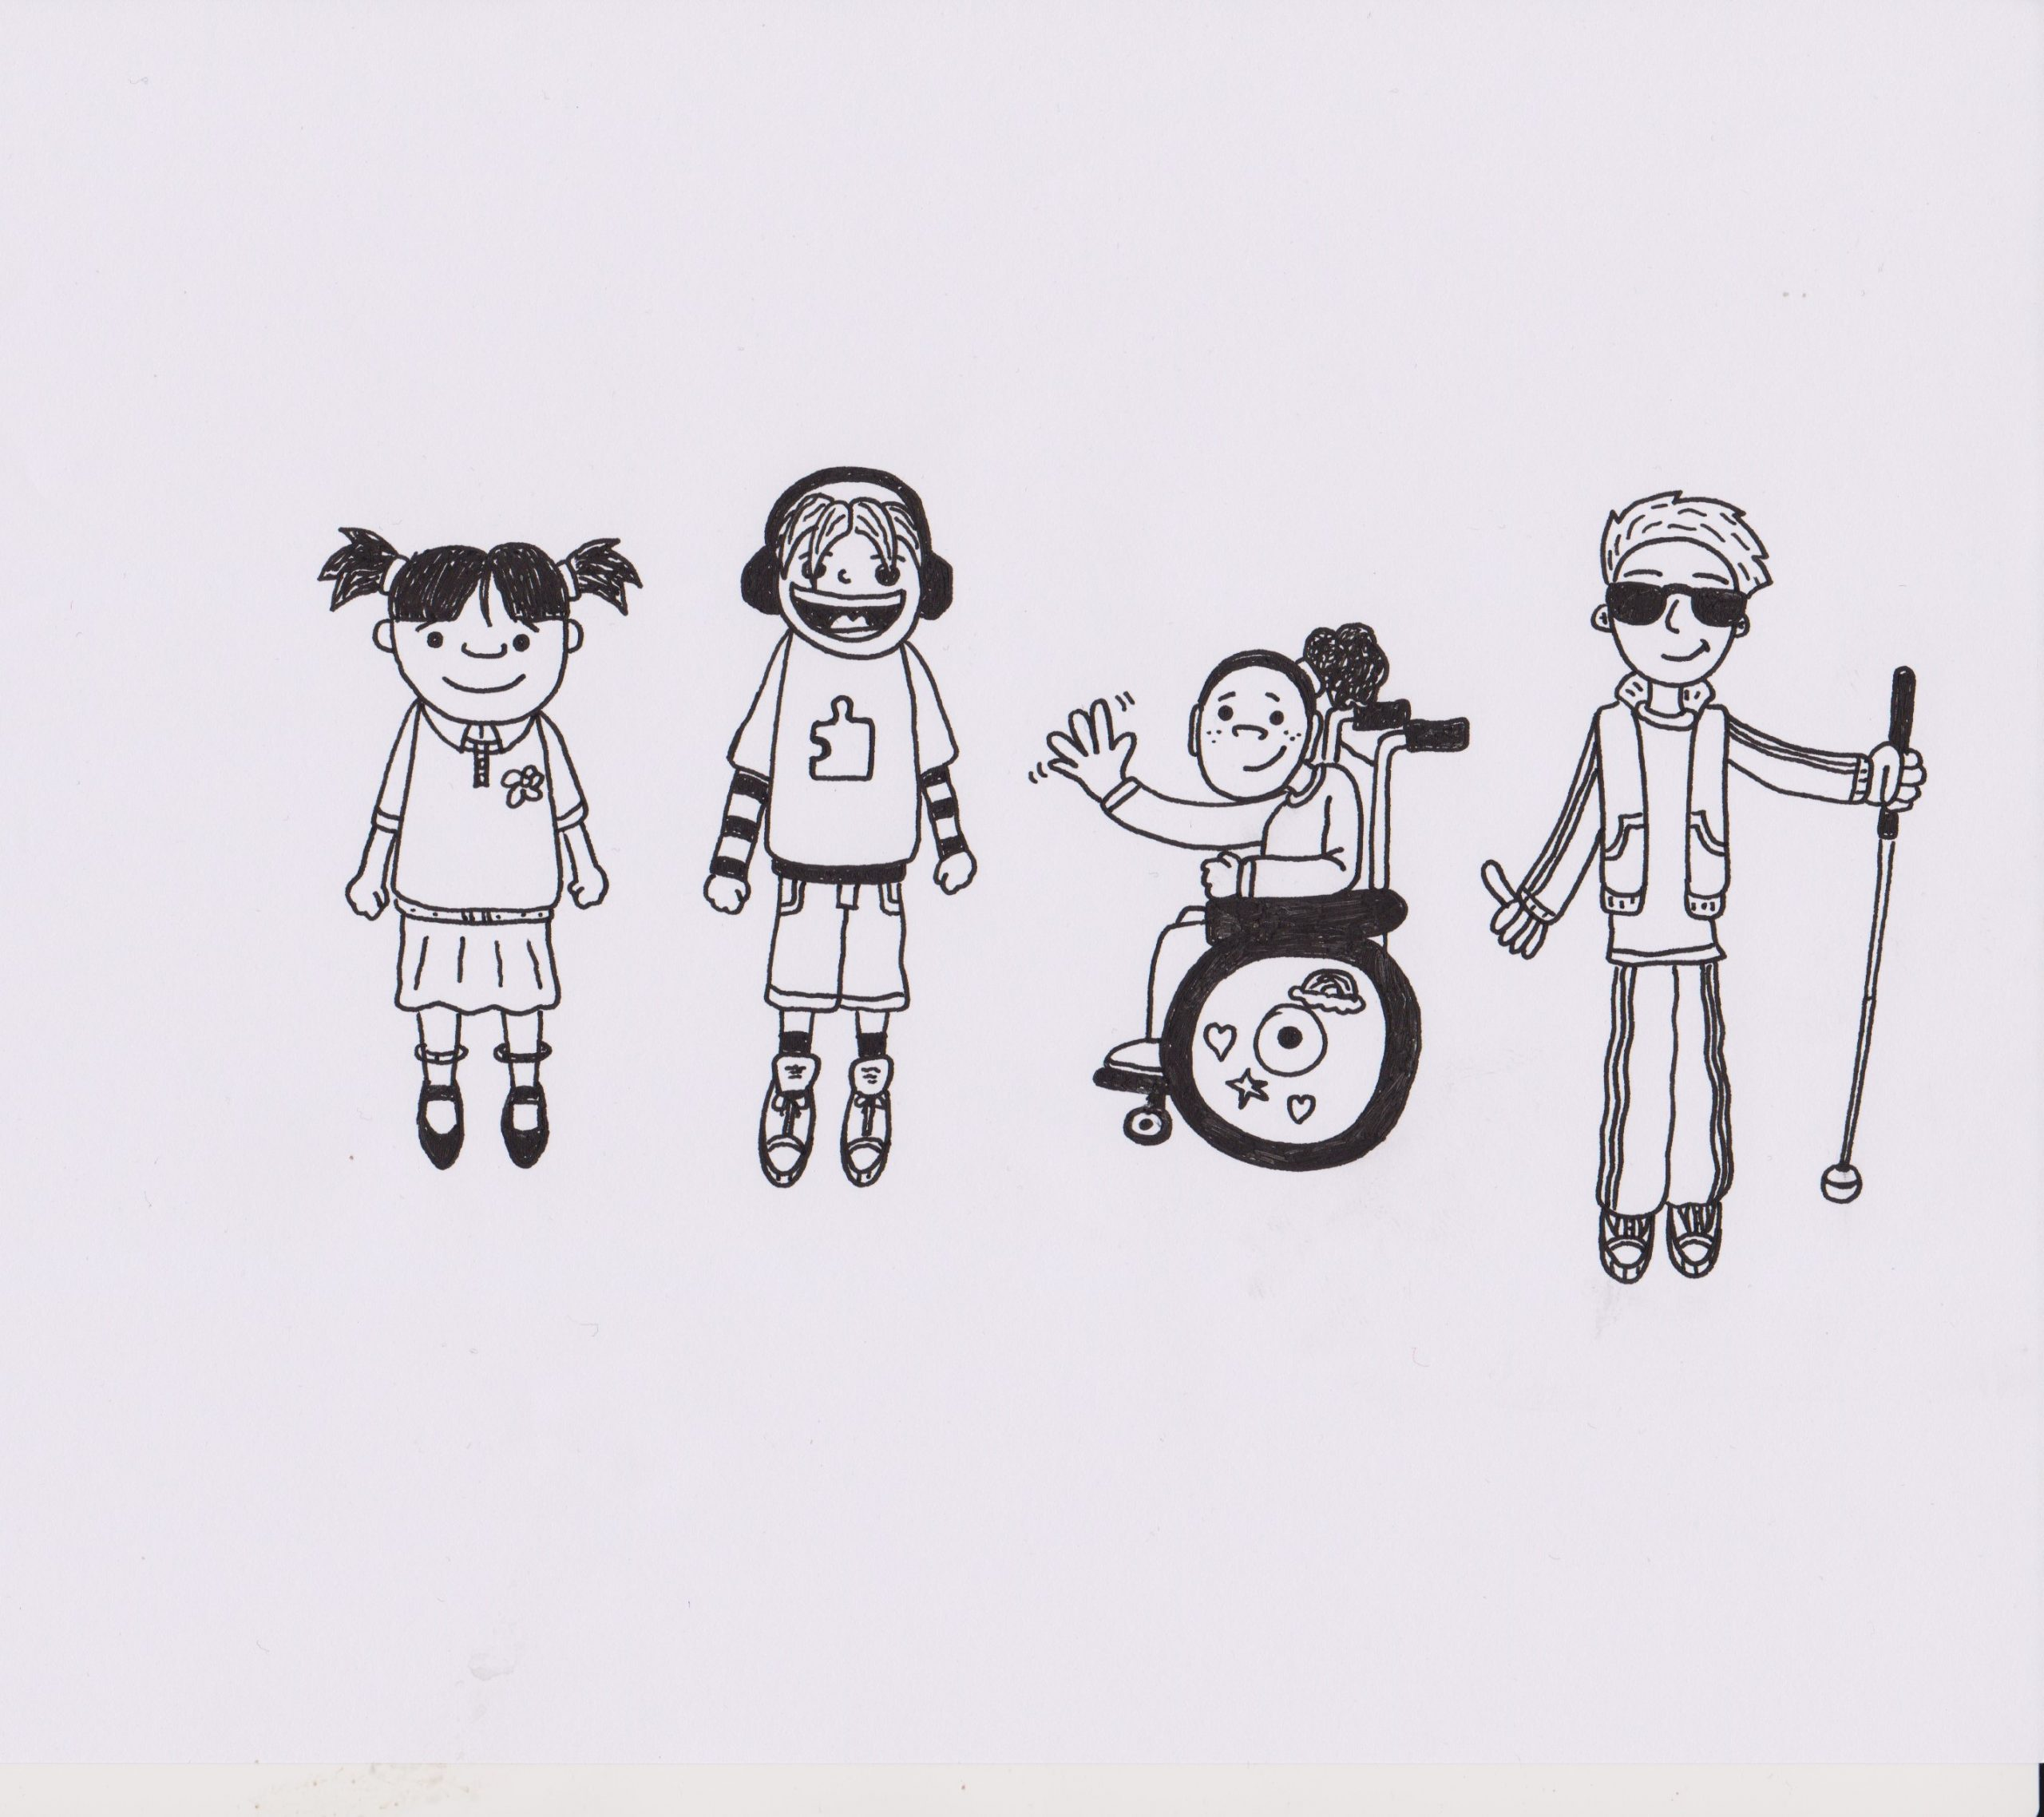 An illustration of 4 people. One is a young girl with dark hair, wearing pig tails and her school uniform. The second is a boy wearing headphones and sporty clothing, with a jigsaw puzzle piece on his top. The third is a girl sitting in a wheelchair and waving. Her wheelchair is decorated in rainbows, hearts and stars. The fourth person is a boy who is visually impaired, wearing glasses and holding a cane. He is holding his thumbs up and smiling.